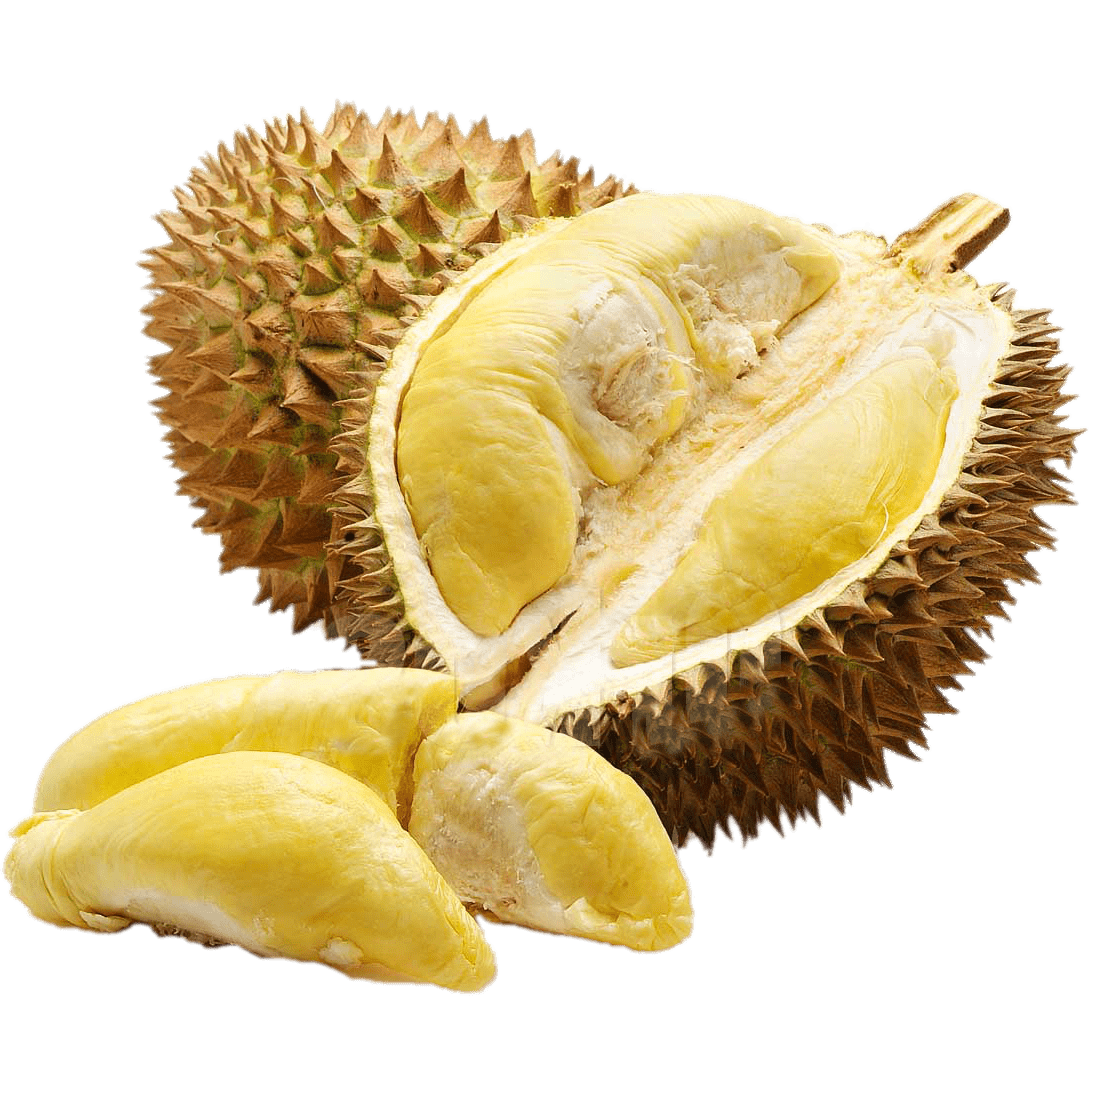 Download - PNG Durian